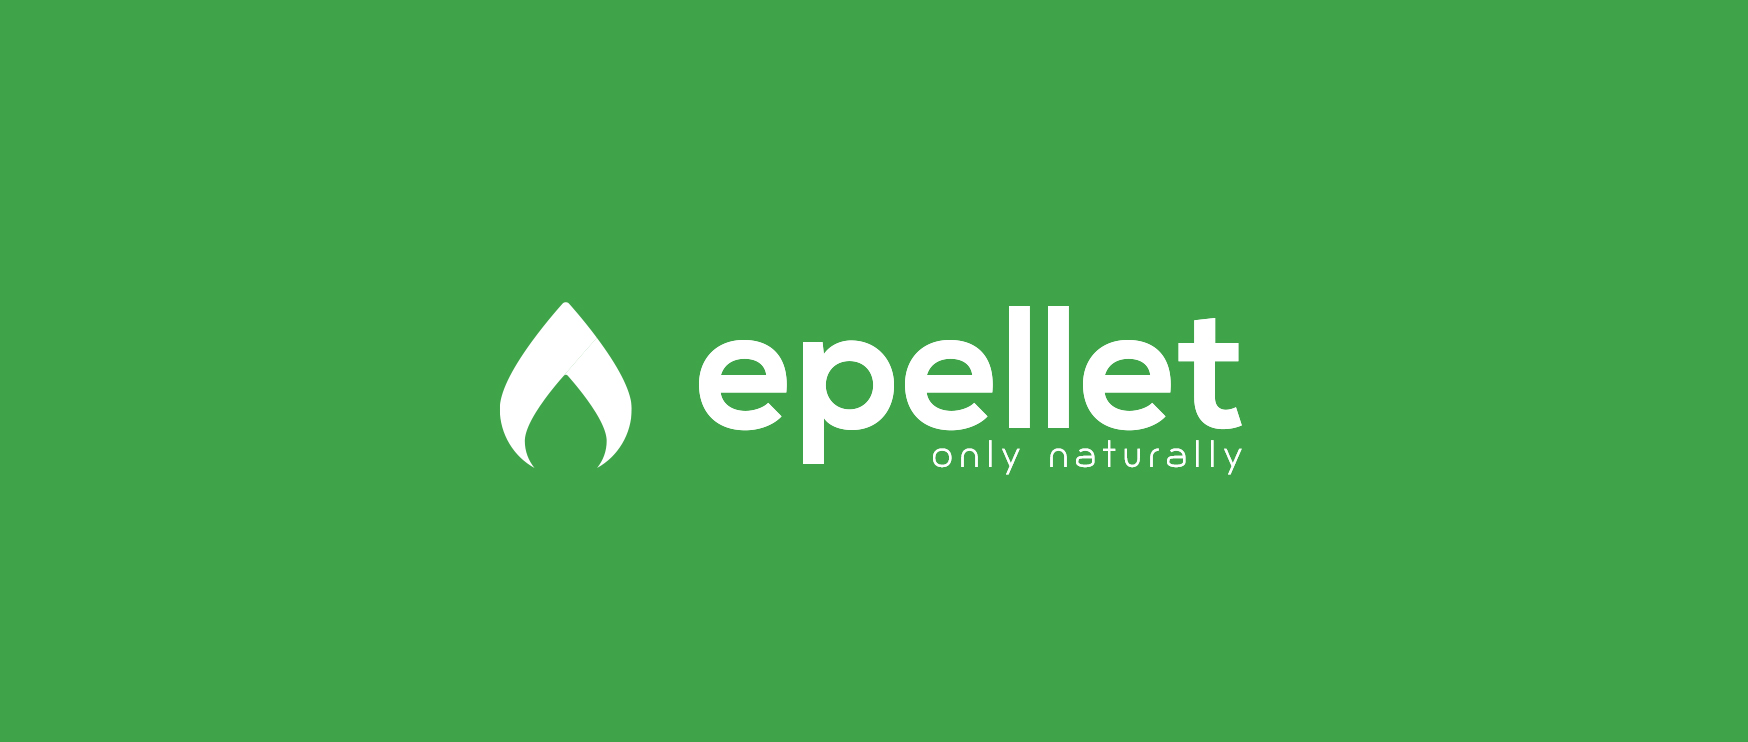 Epellet